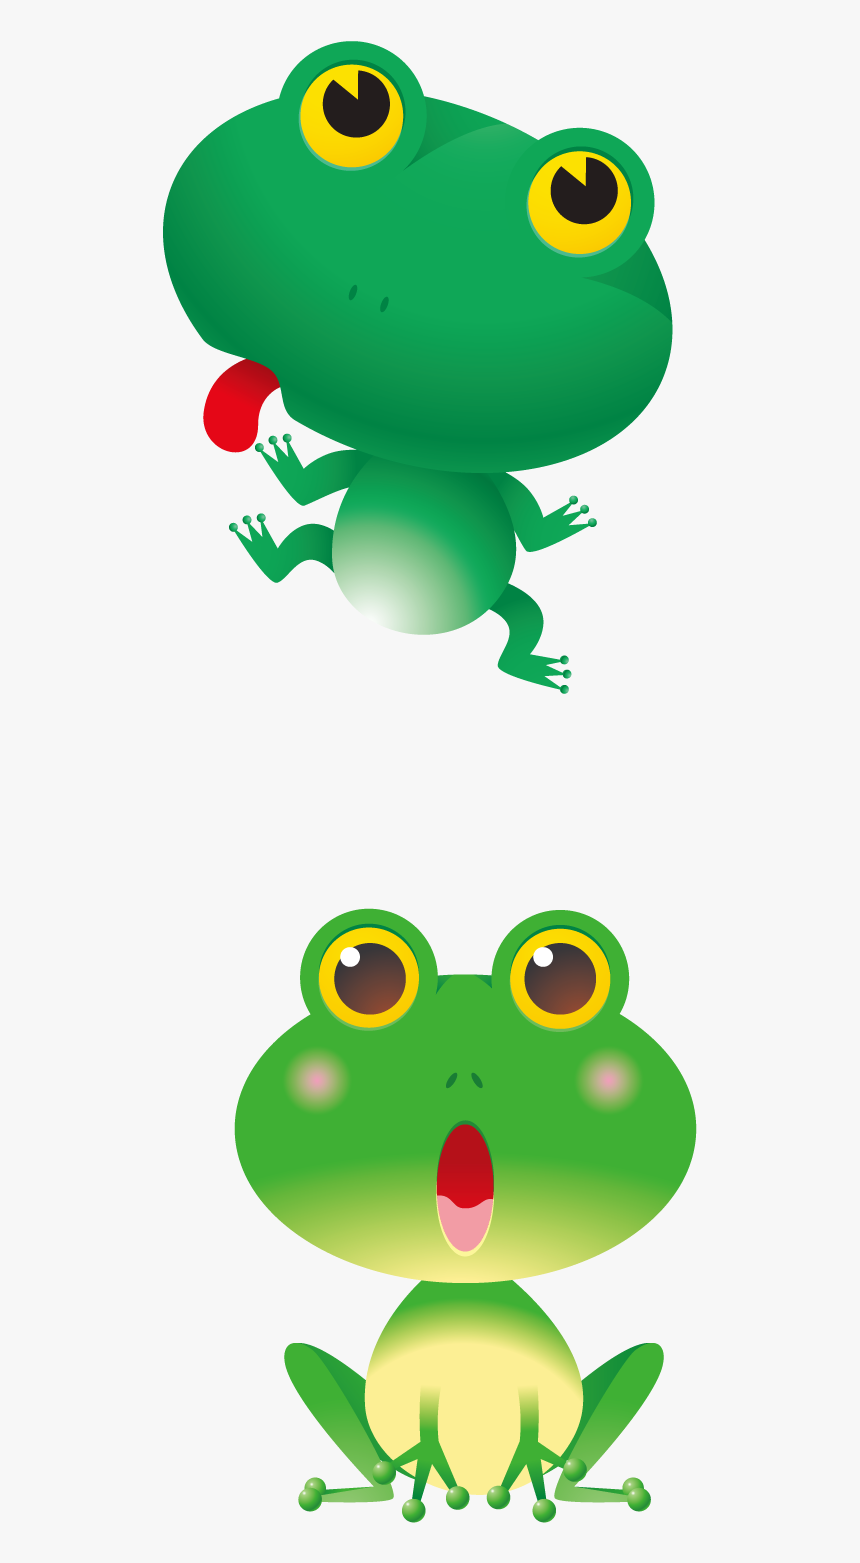 Red Eyed Tree Frogs Cartoons Clipart , Png Download - Cartoon Red Eyed Tree Frog Clipart, Transparent Png, Free Download